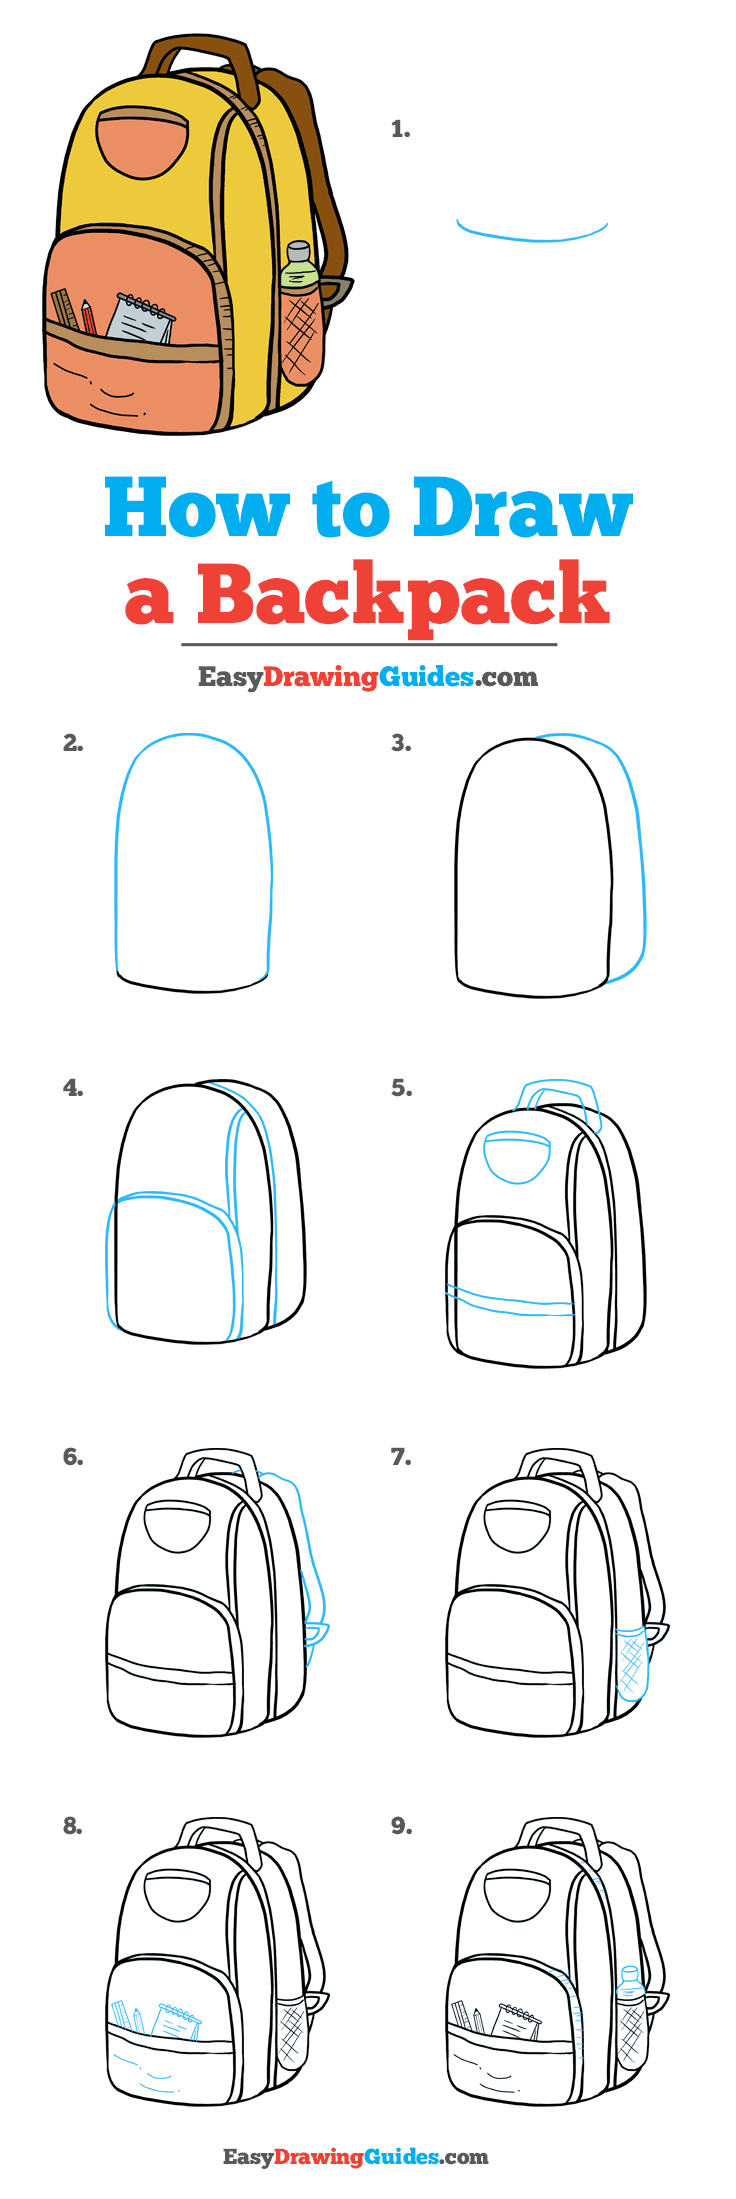 How to Draw Backpack